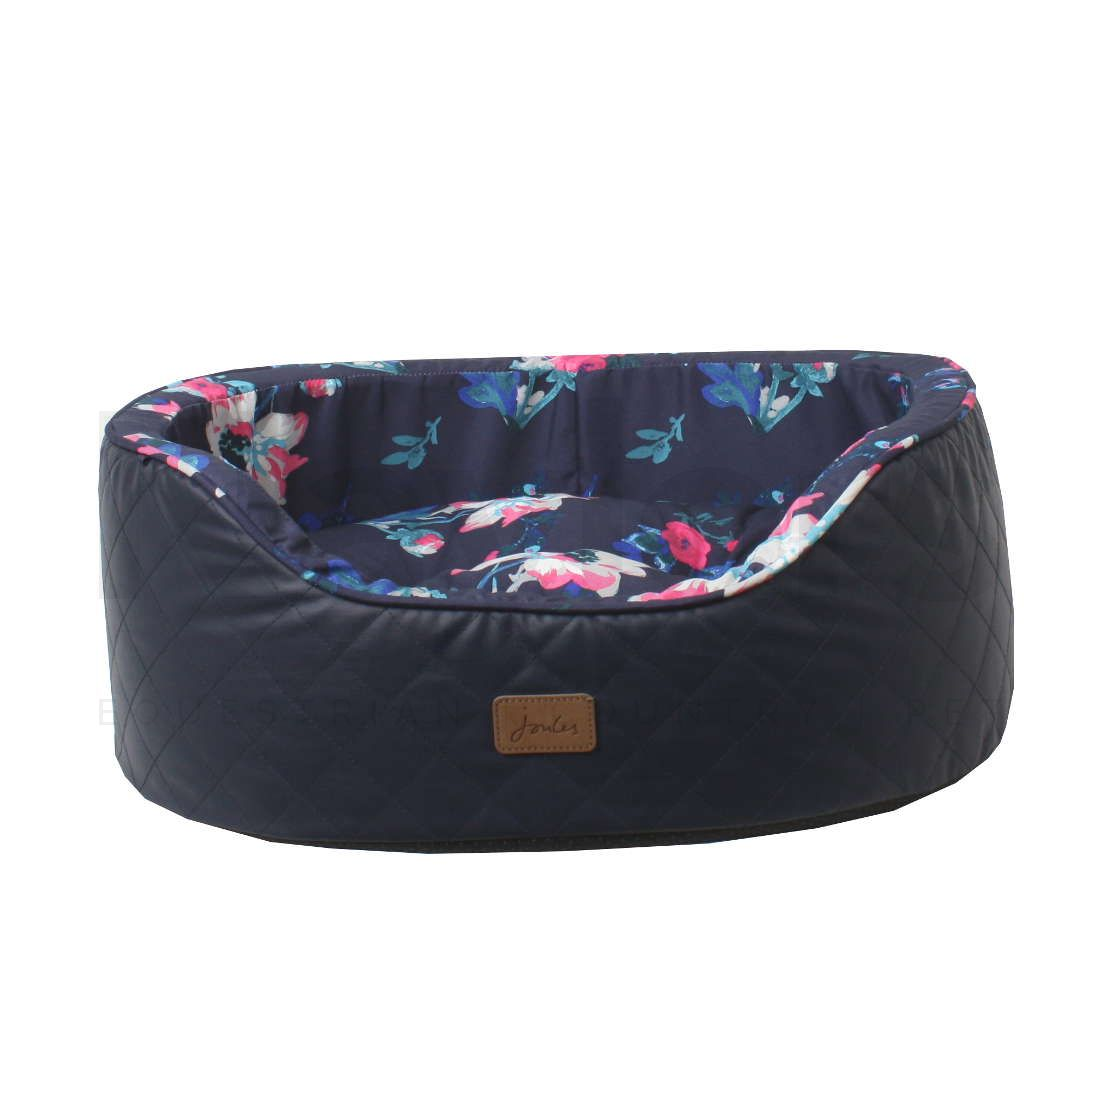 Joules Dog Beds Amazon Online Shopping